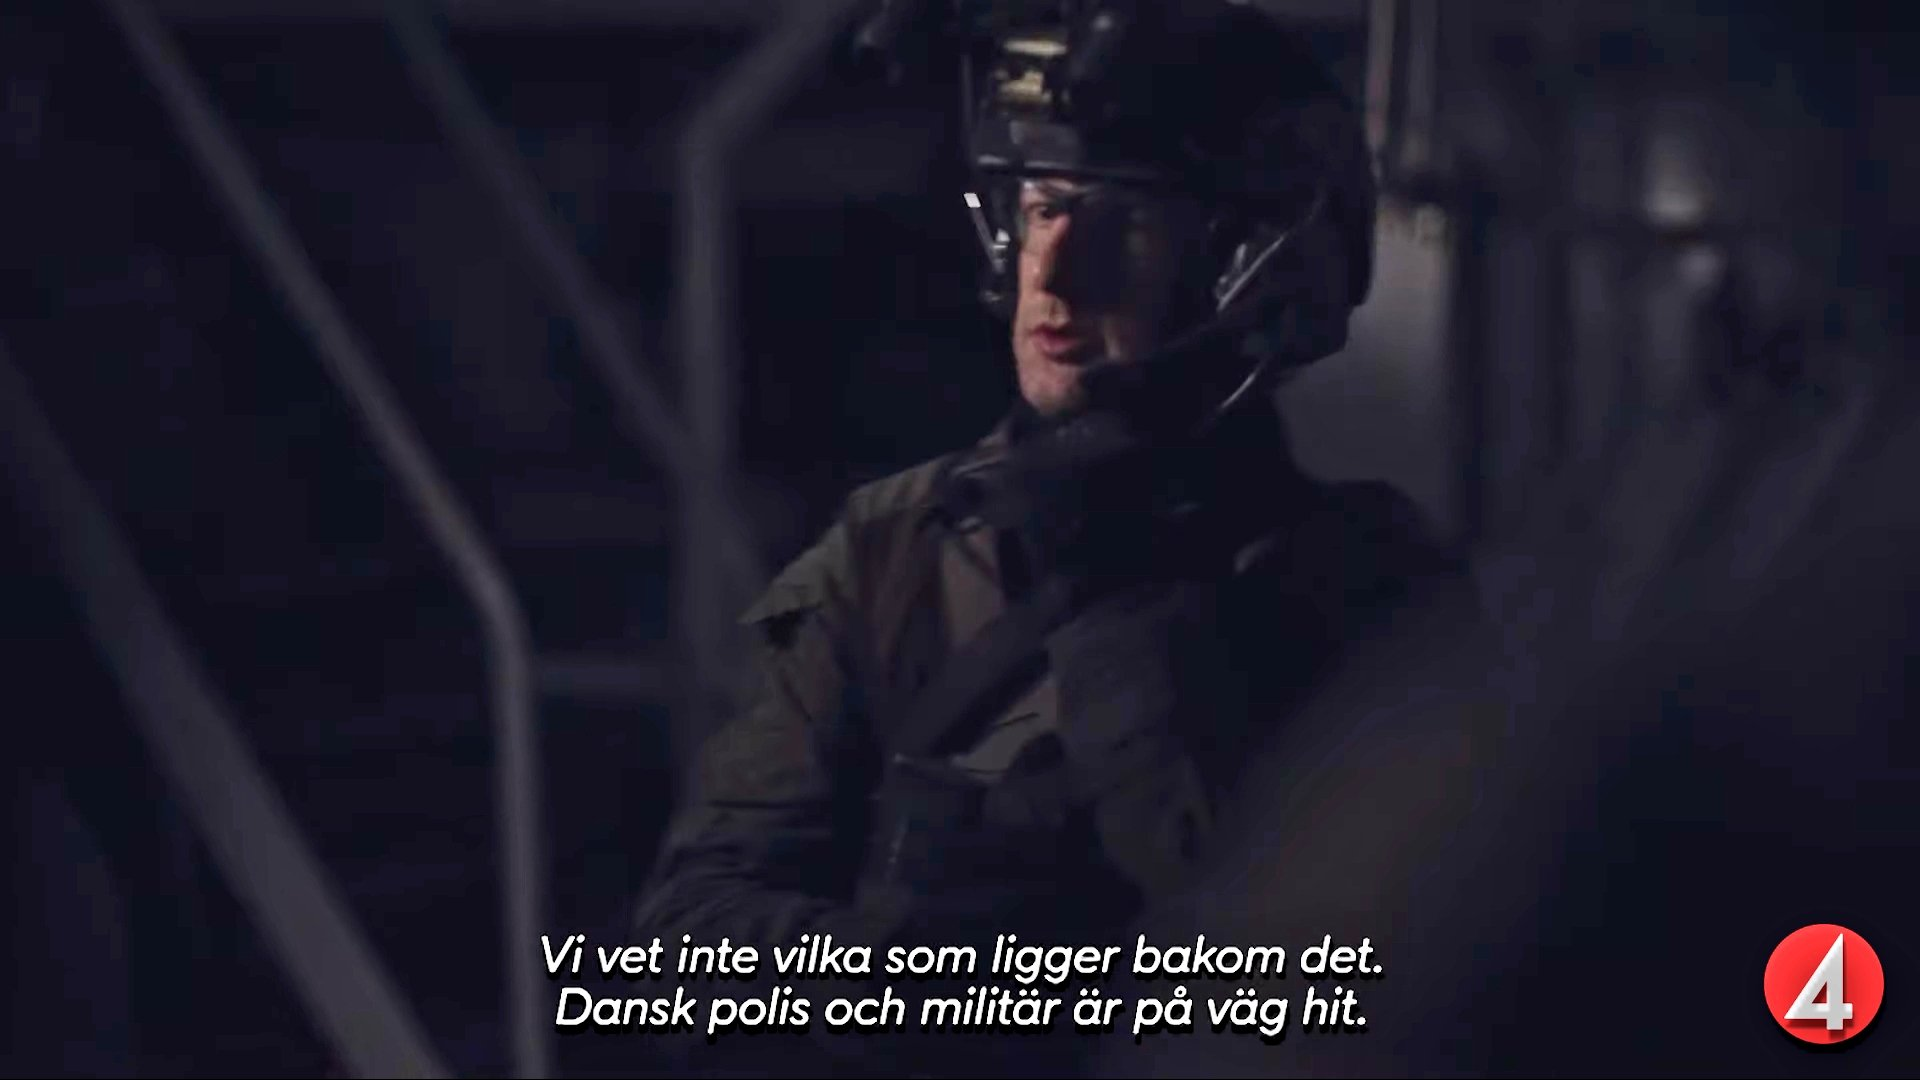 DR1 DK,TV4 Sverige, C More og Norge, Finland m.fl  Thin Ice / Tunn is